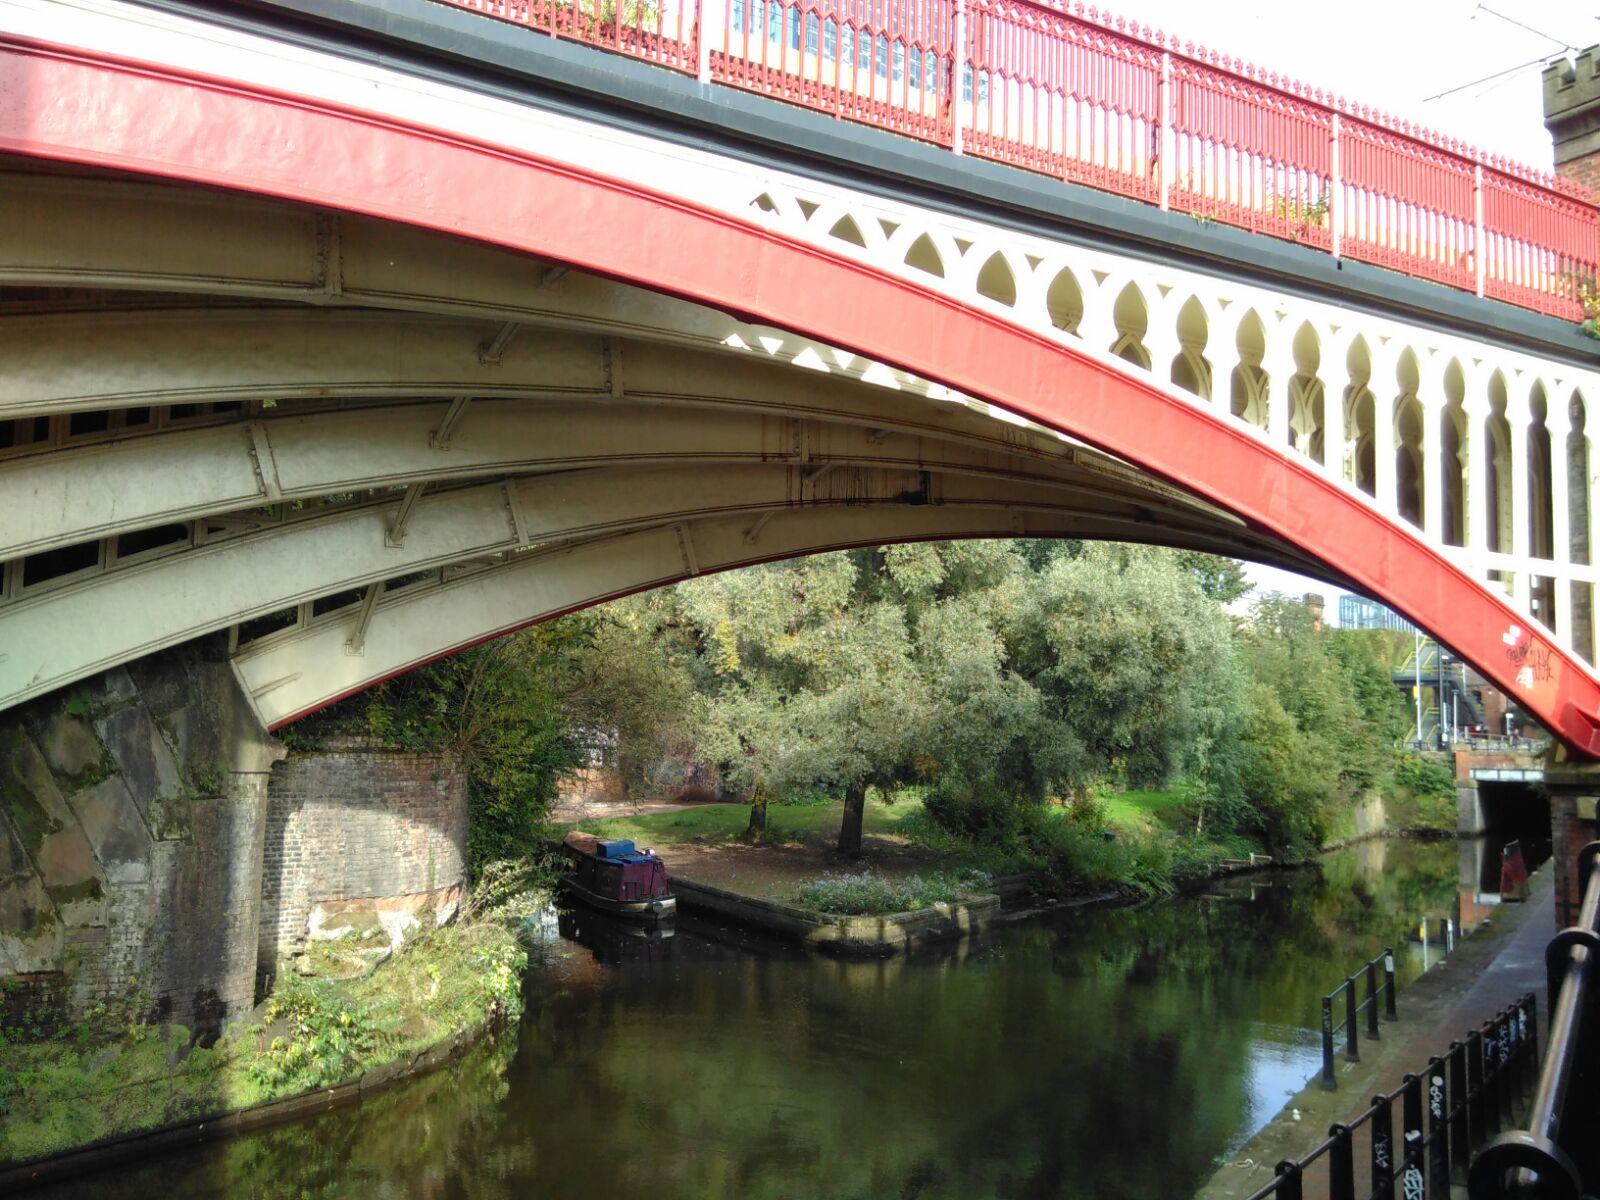 a red painted bridge over a canal